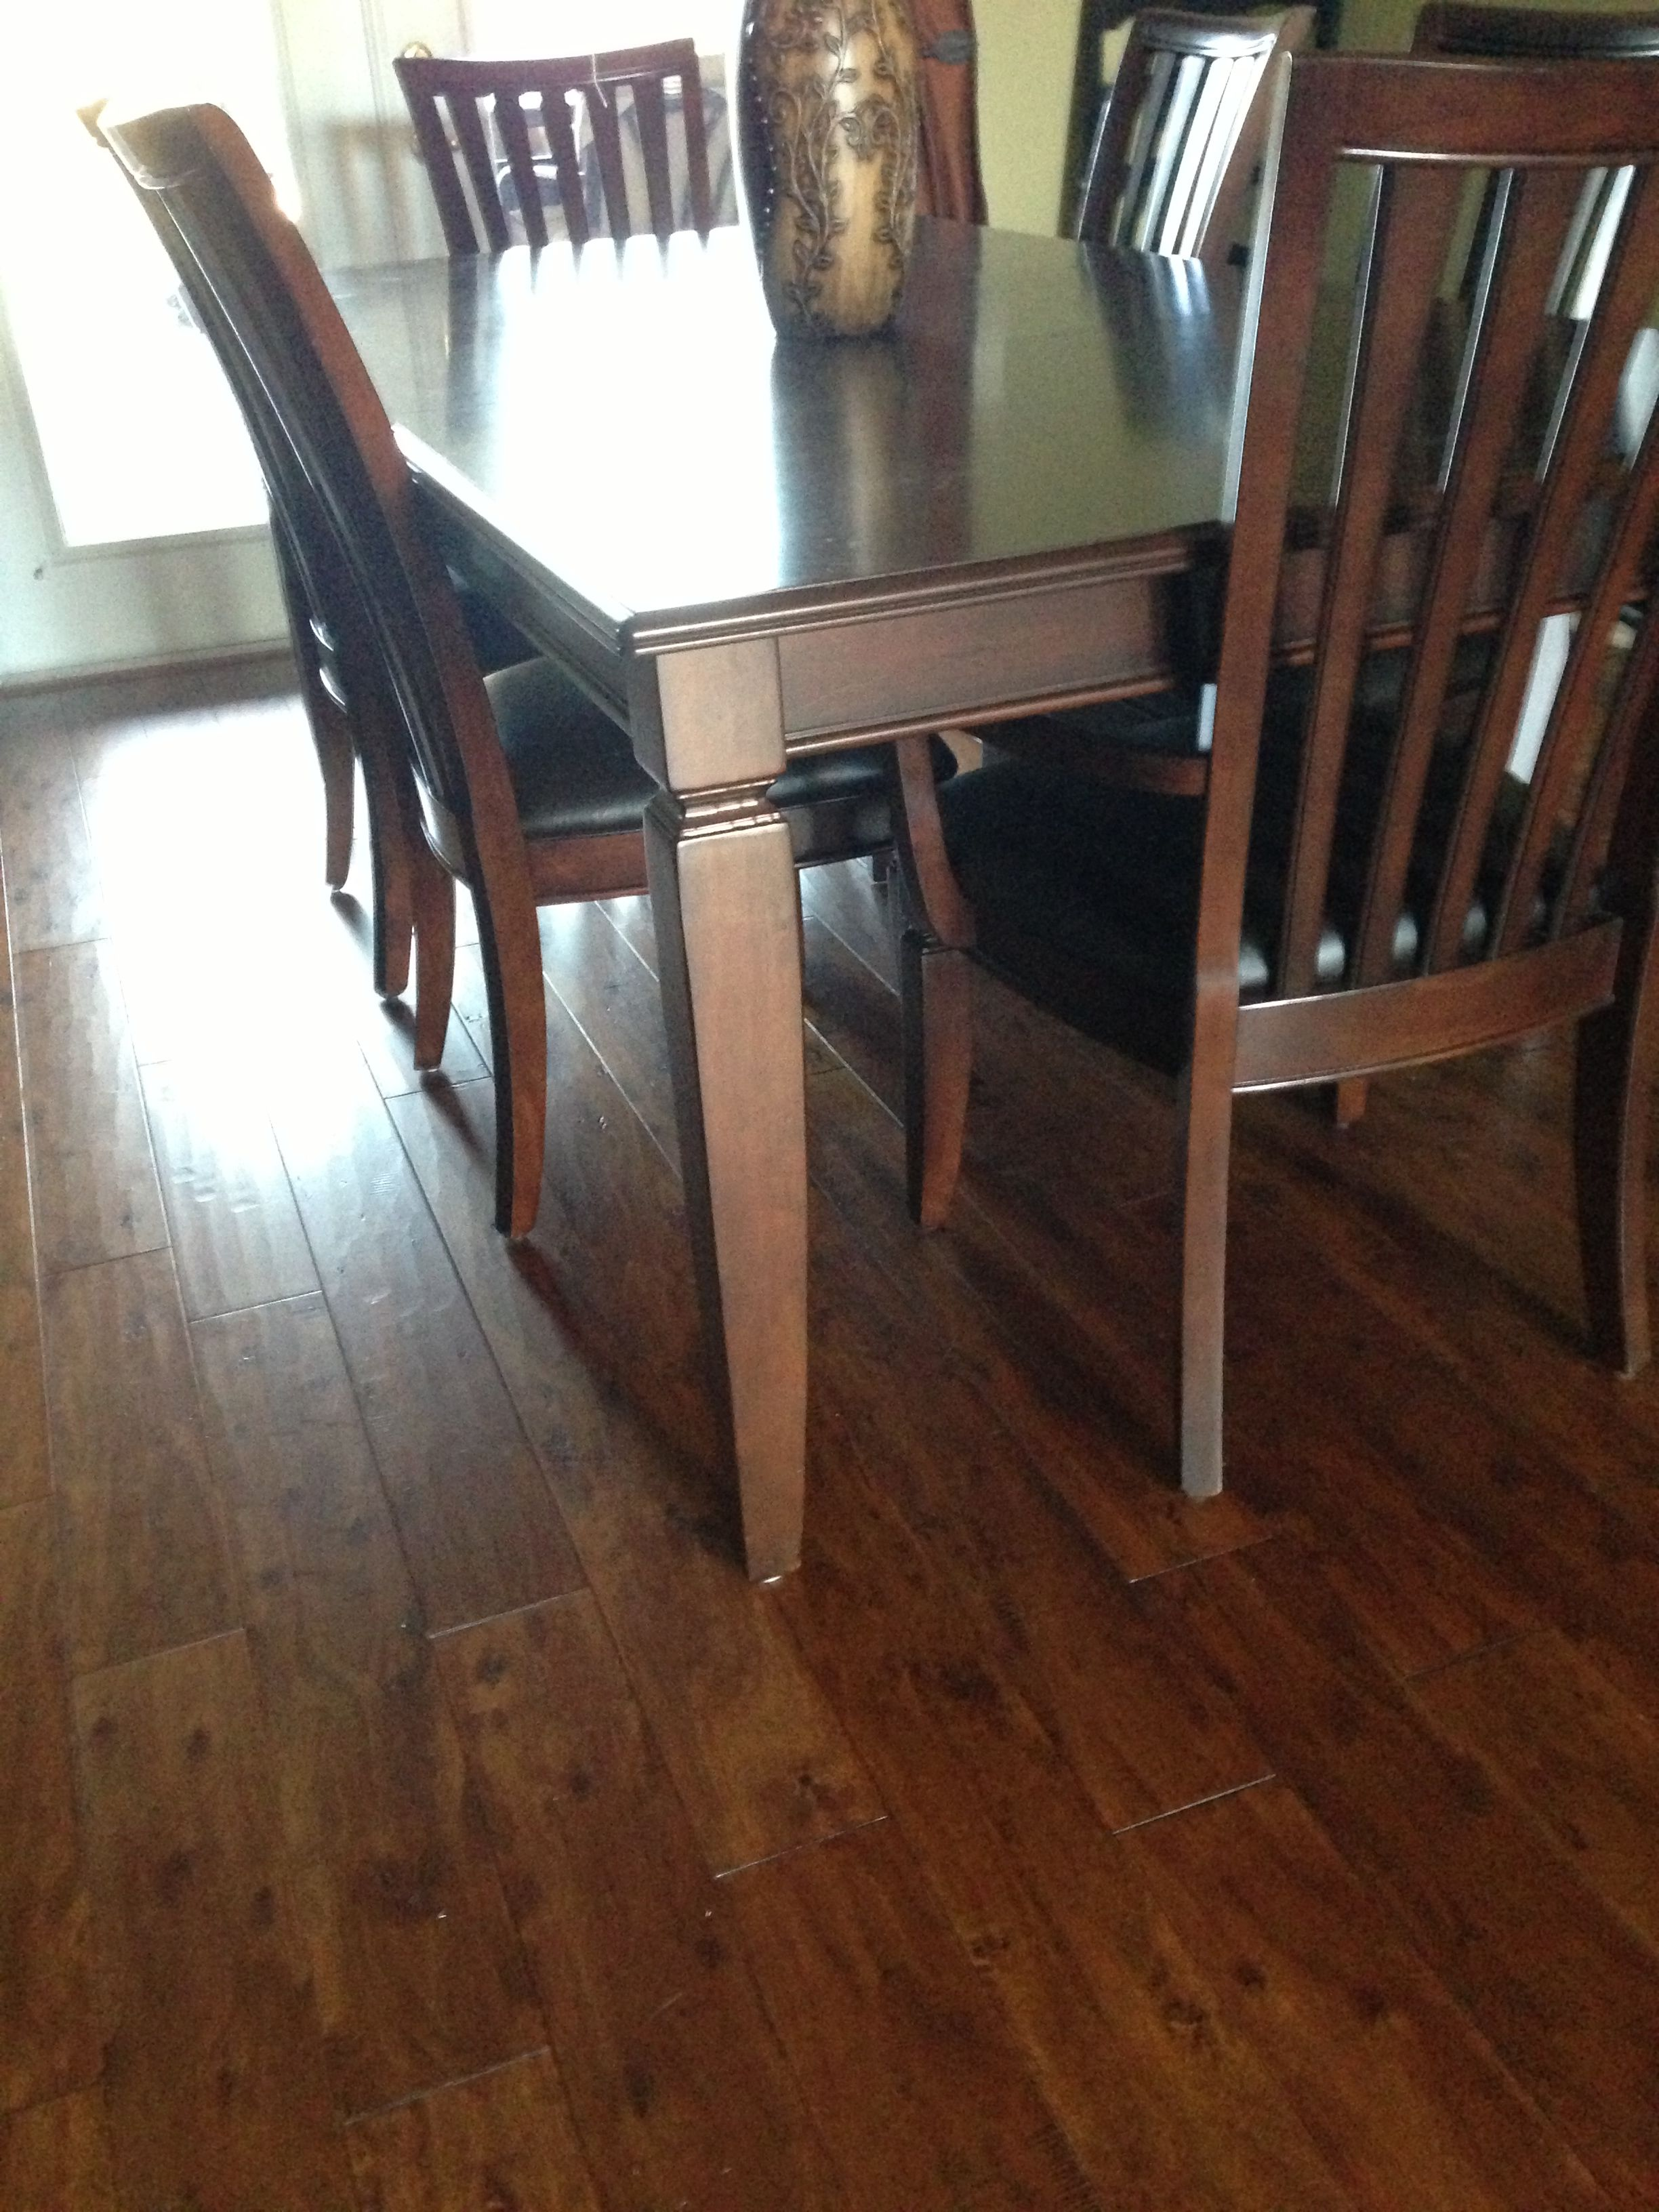 Awesome wood floors we installed super price and quality! Lots to choose from and our installers are fabulous !